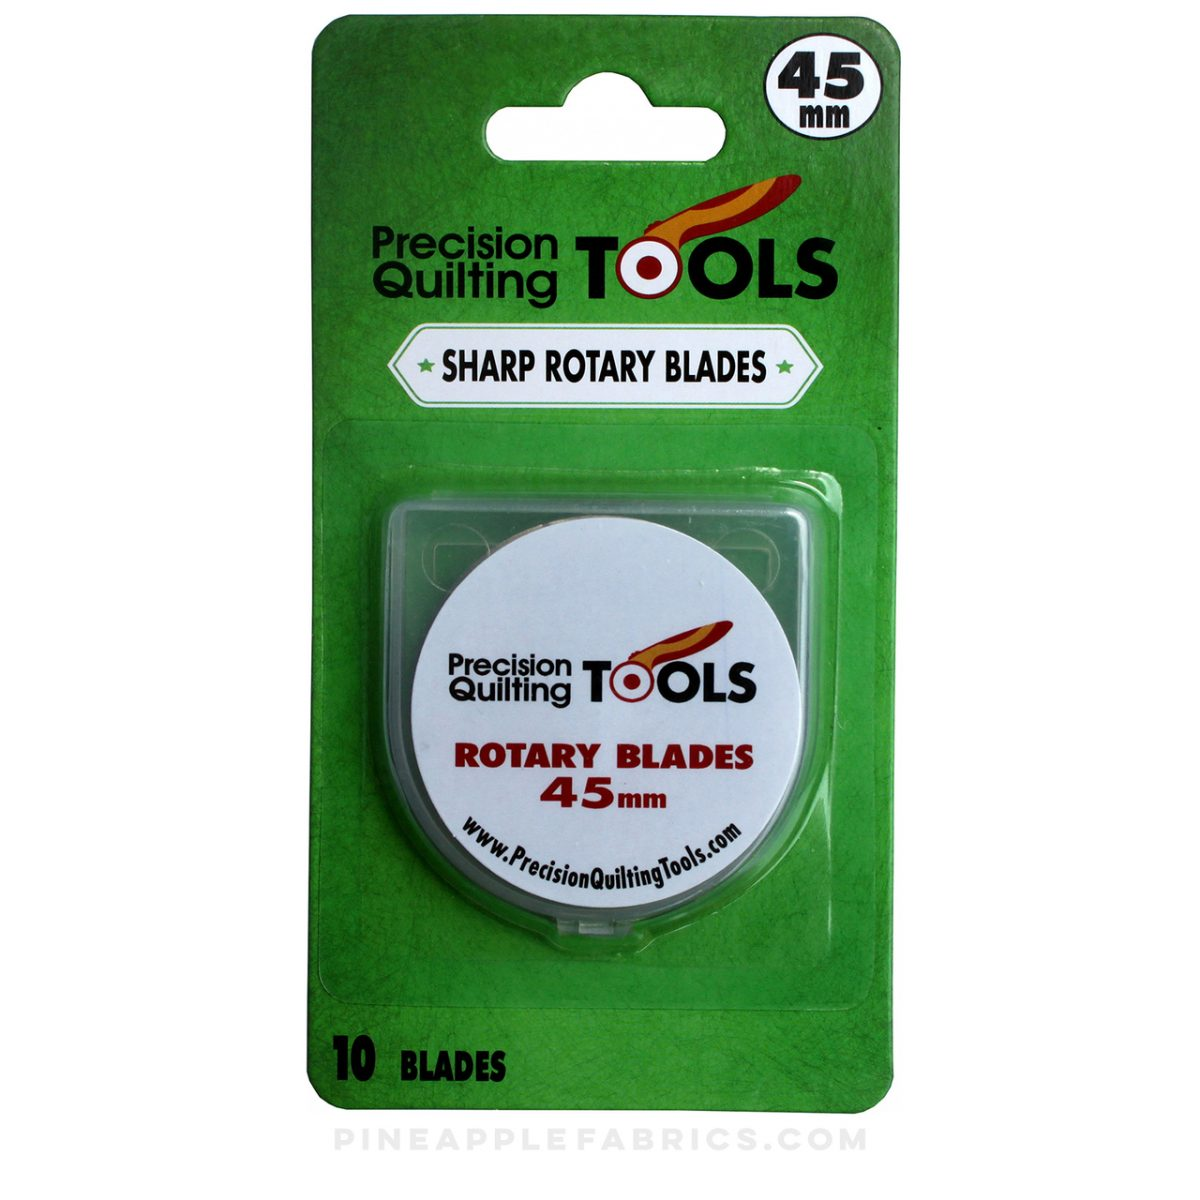 Precision Quilting Tools - Sharp Rotary Blades 45mm (10pk)